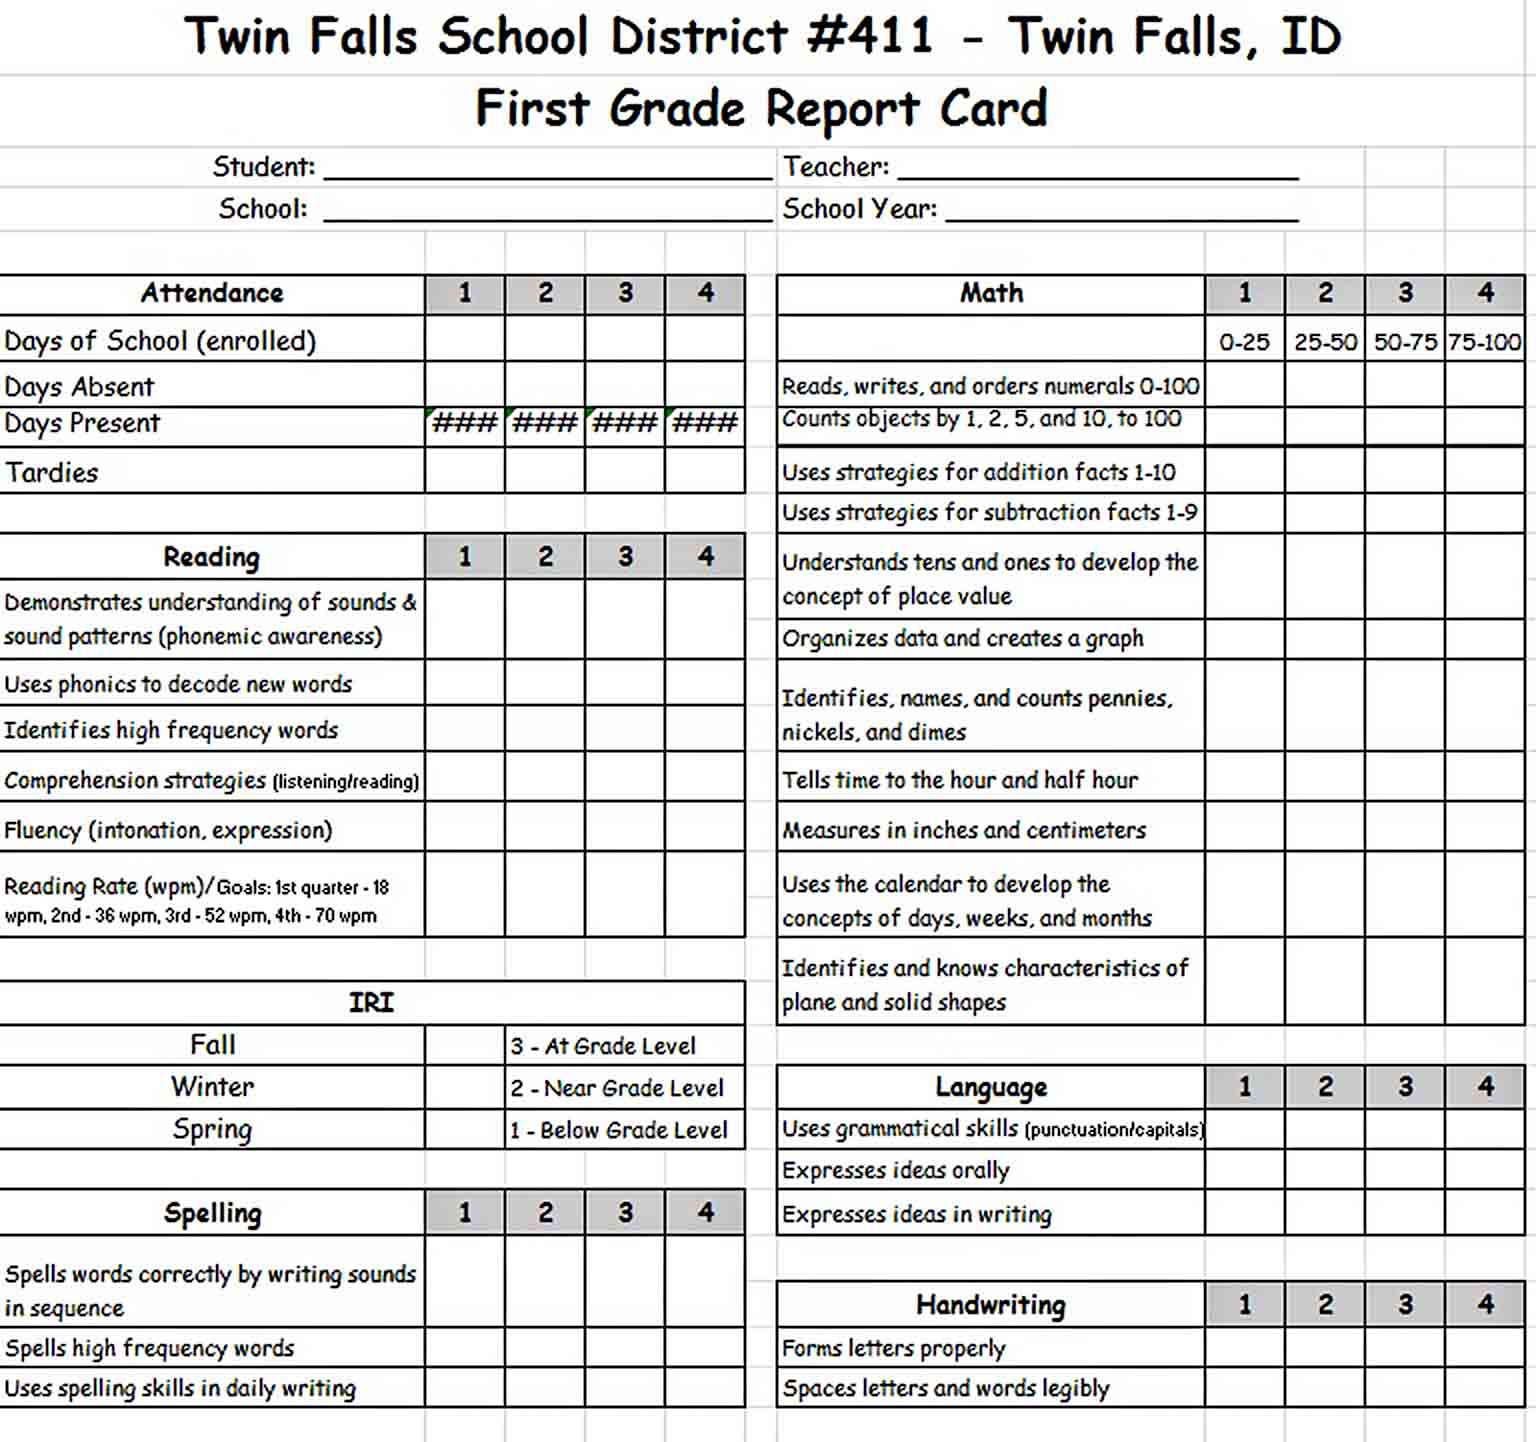 Templates First Grade Report Card Excel Format for Free